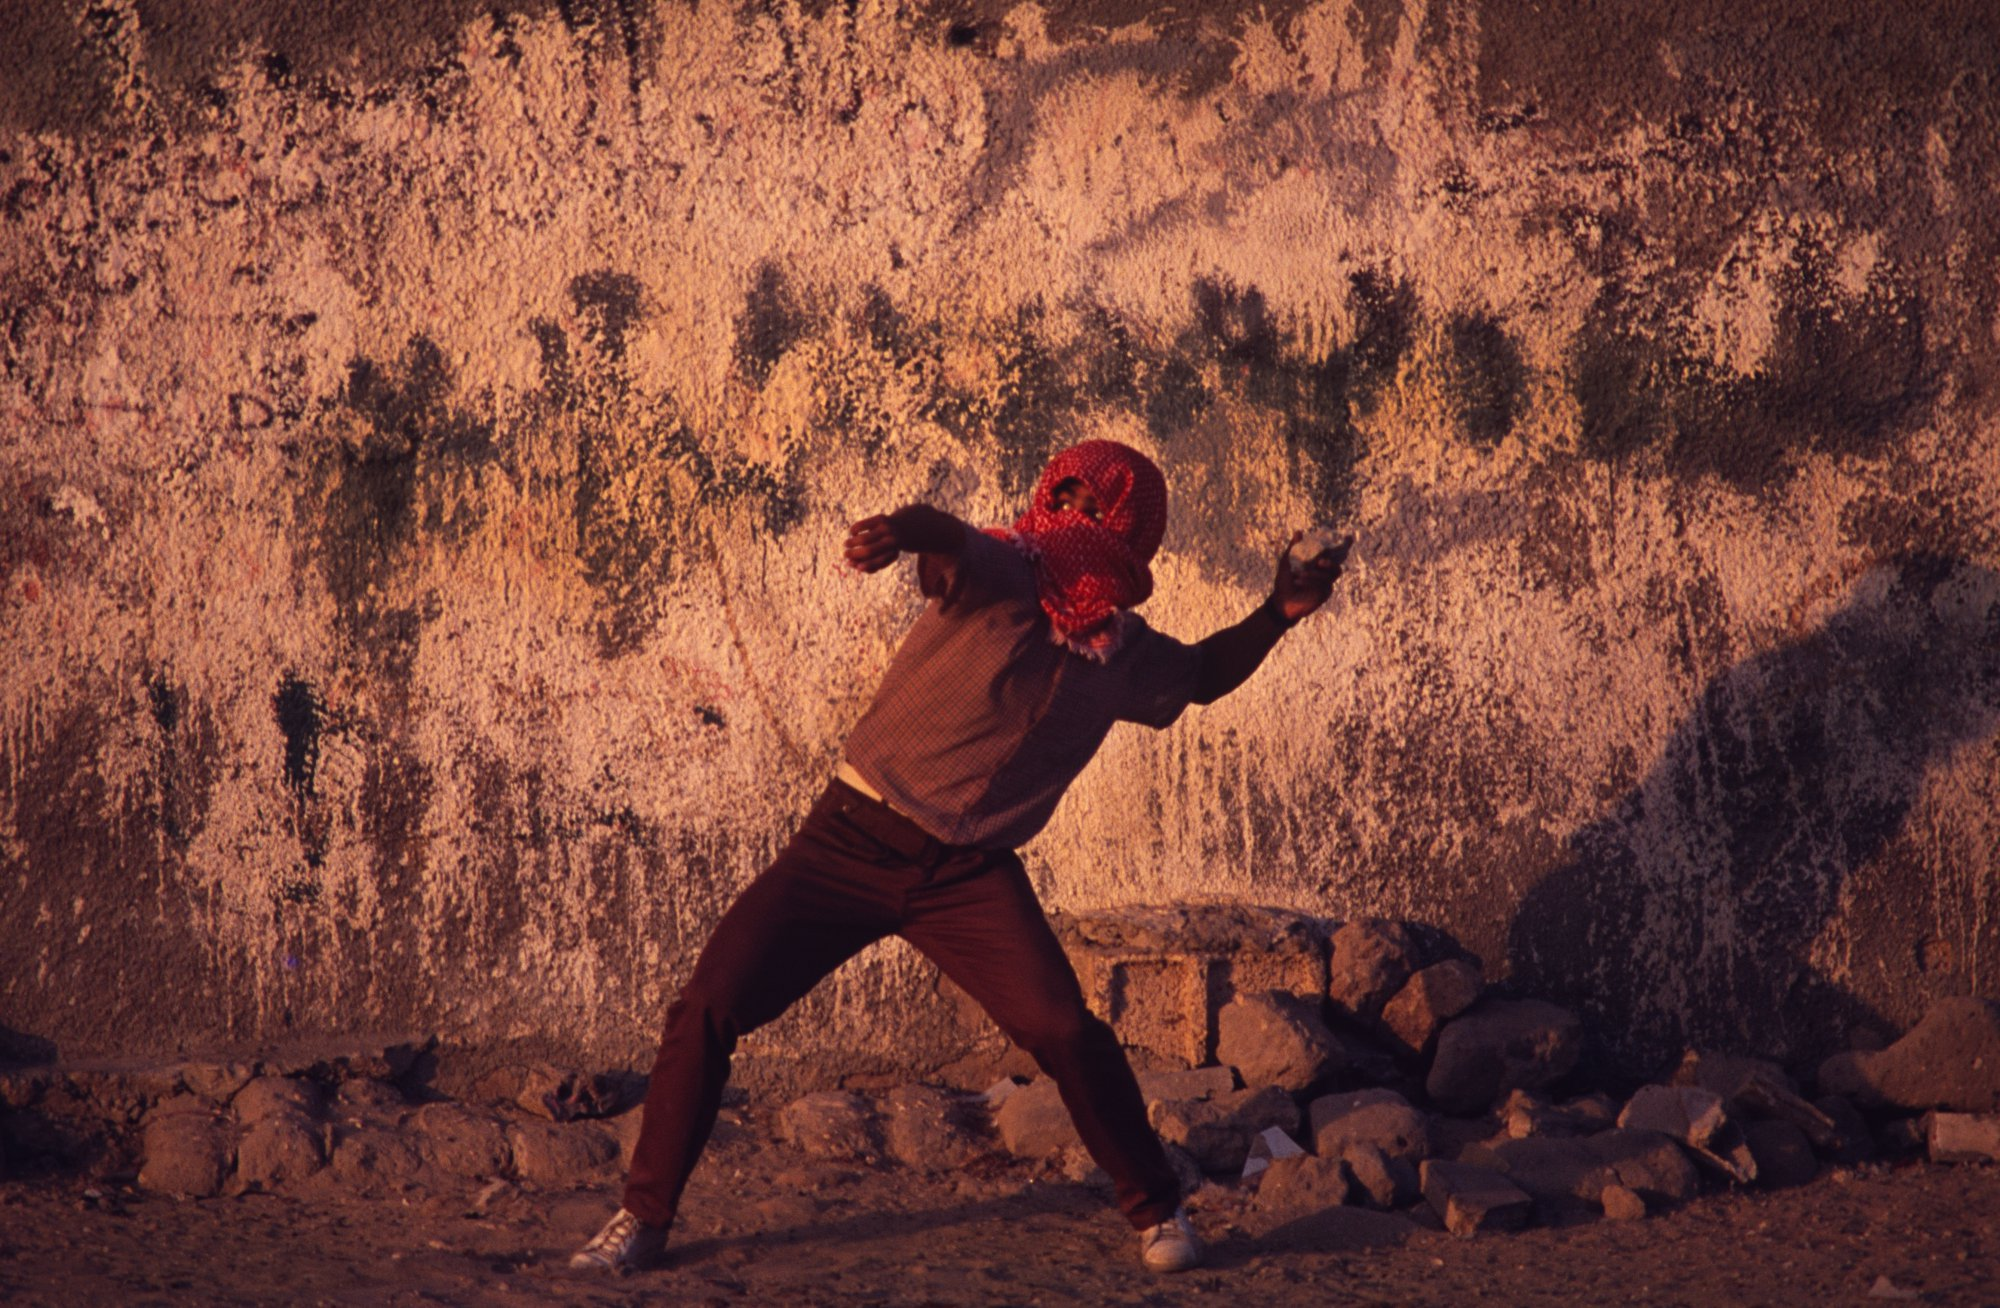 A member of the PLO hurls a rock (during the First Intifada) at Israeli Army soldiers in the Gaza Strip. 1992